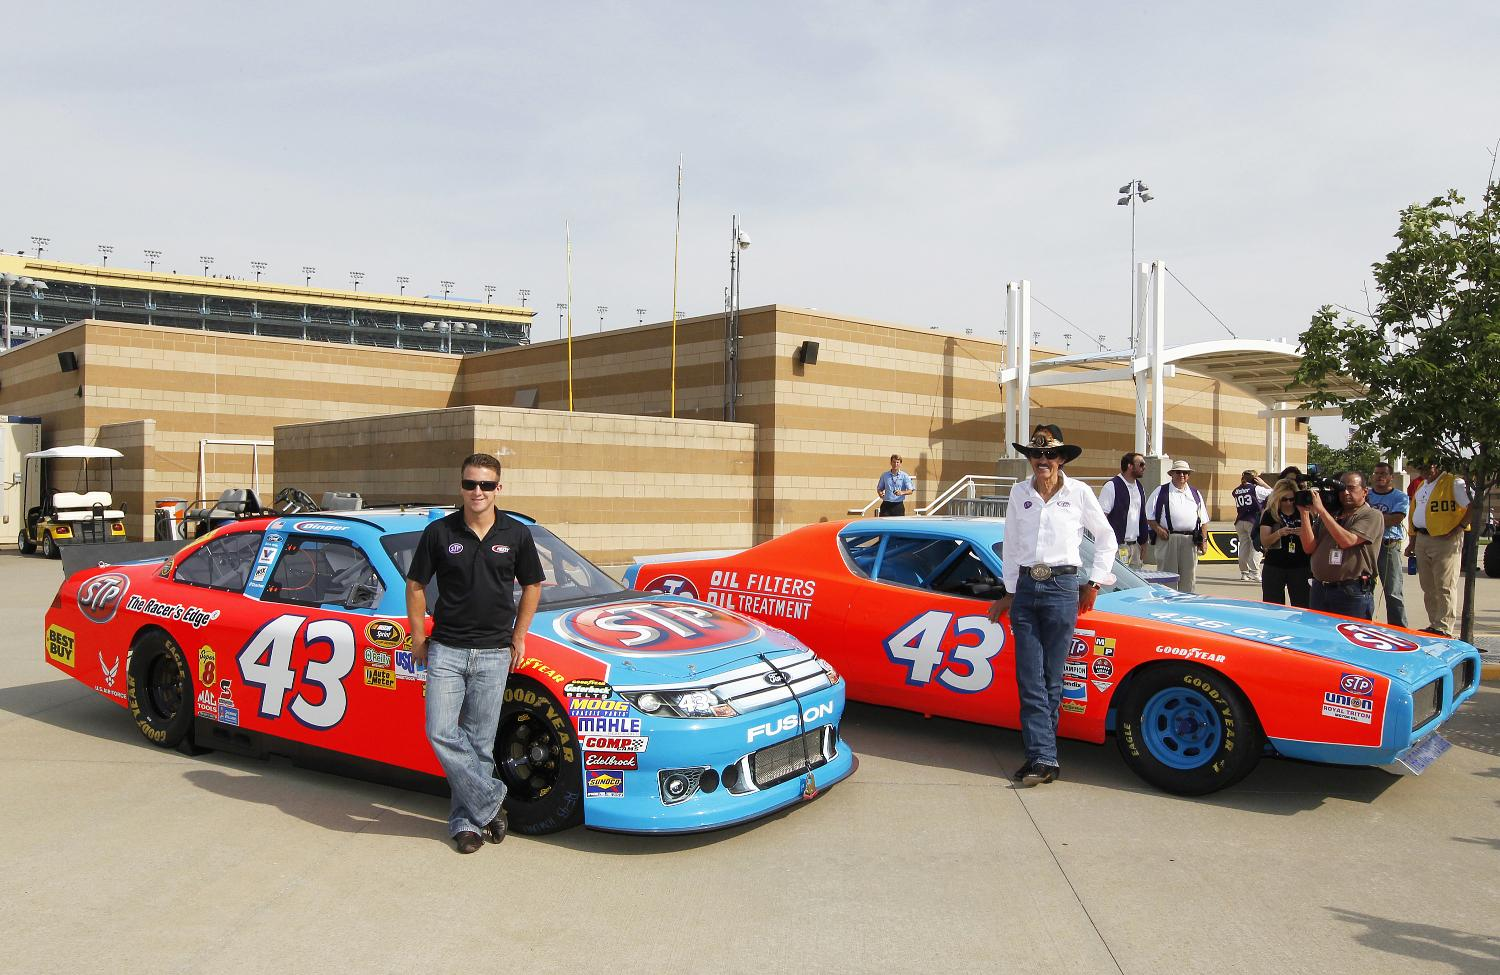 King Richard Petty Honored In Stp S Nascar Return